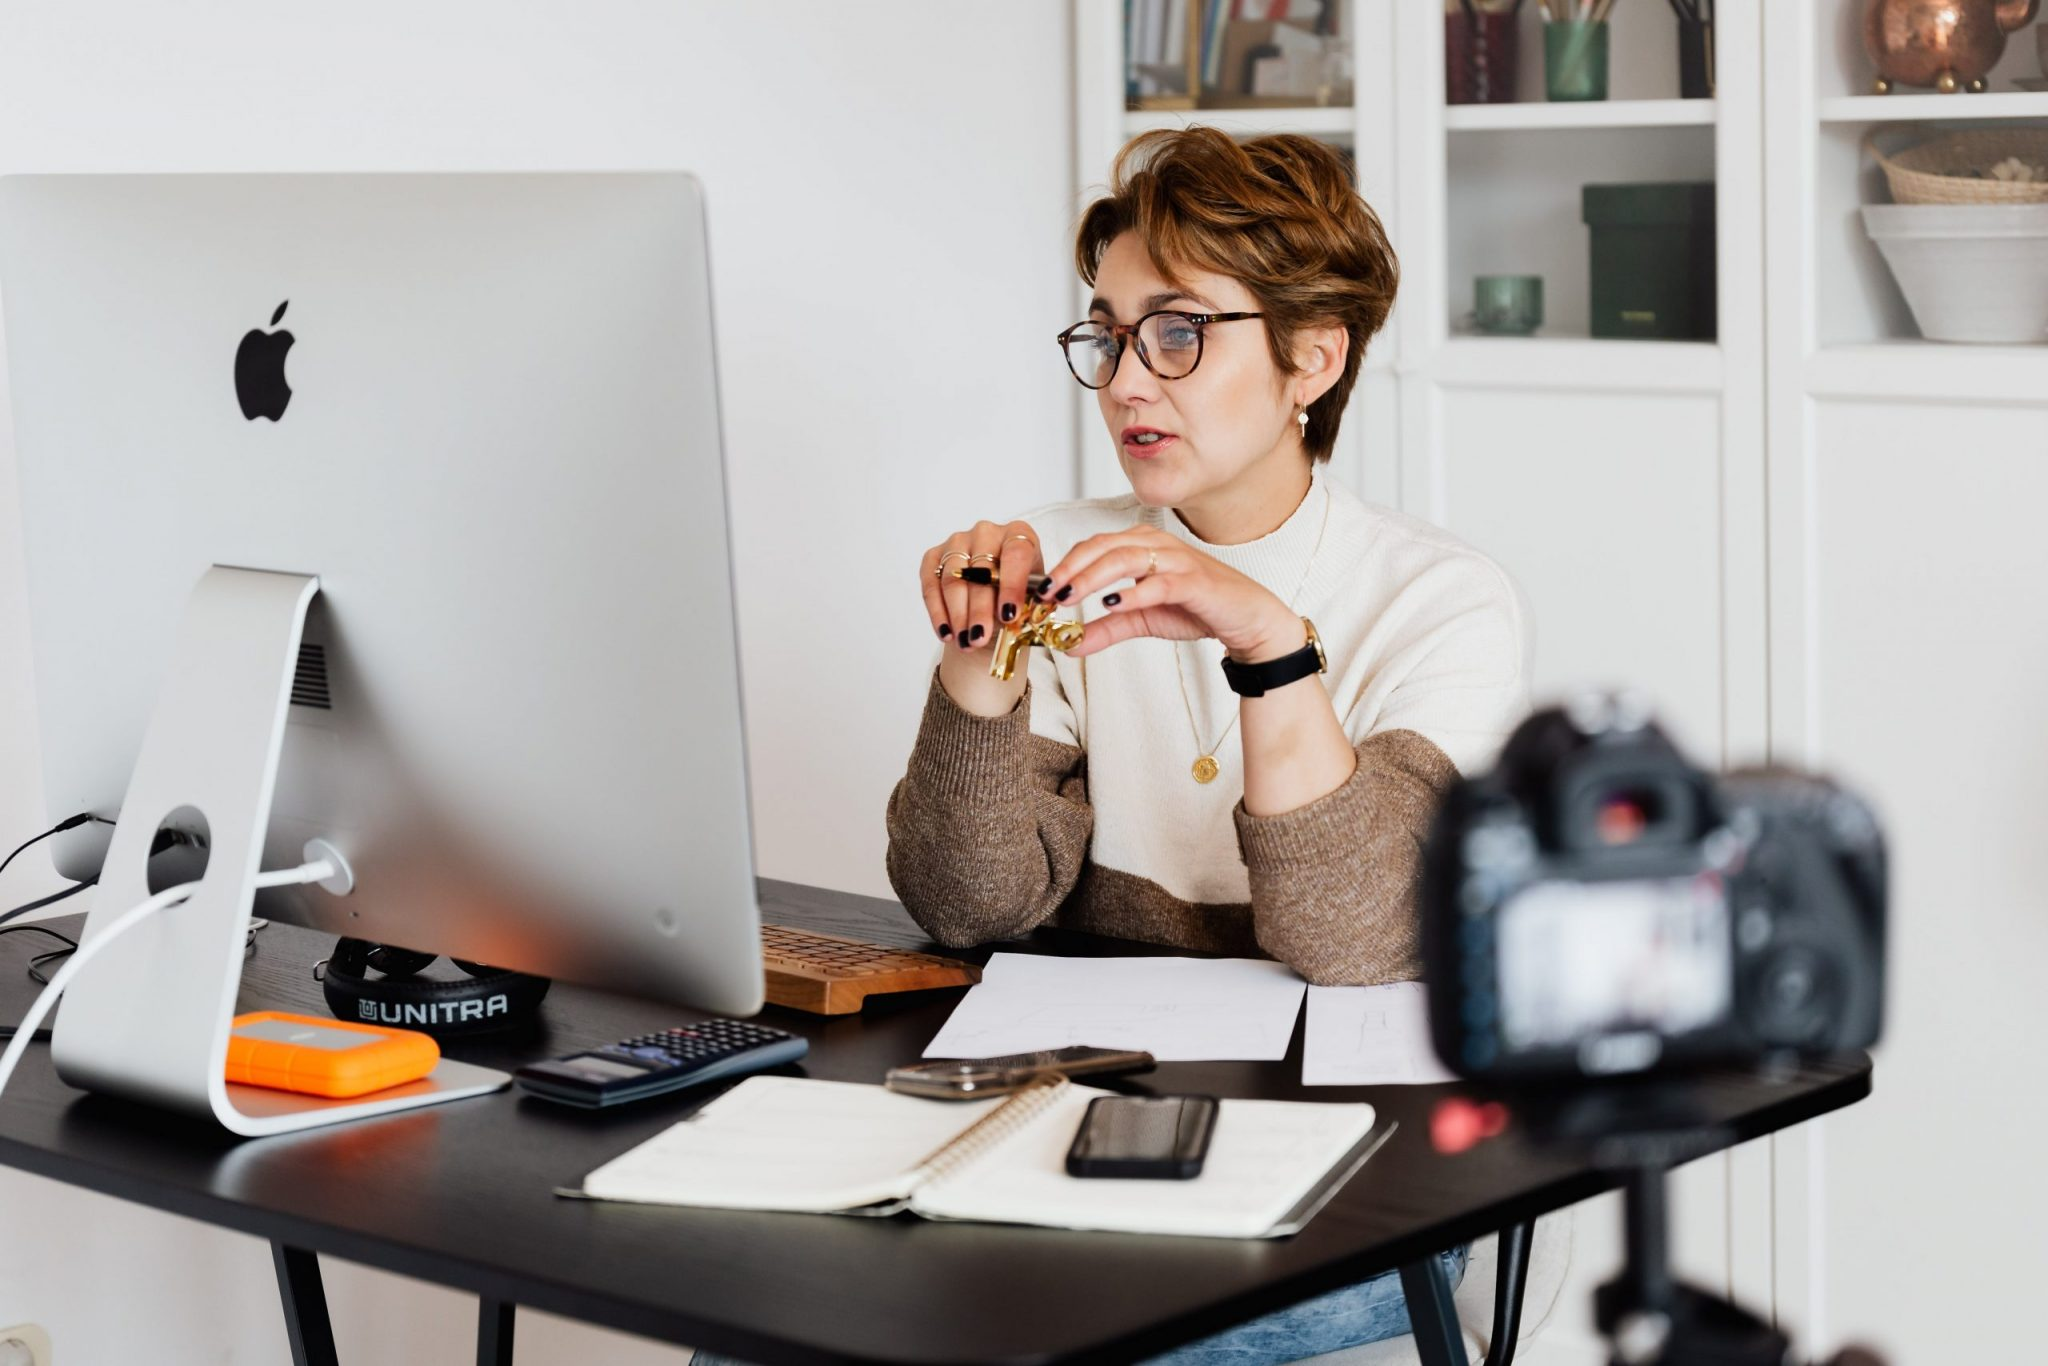 Promo Videos To Boost Your SEO